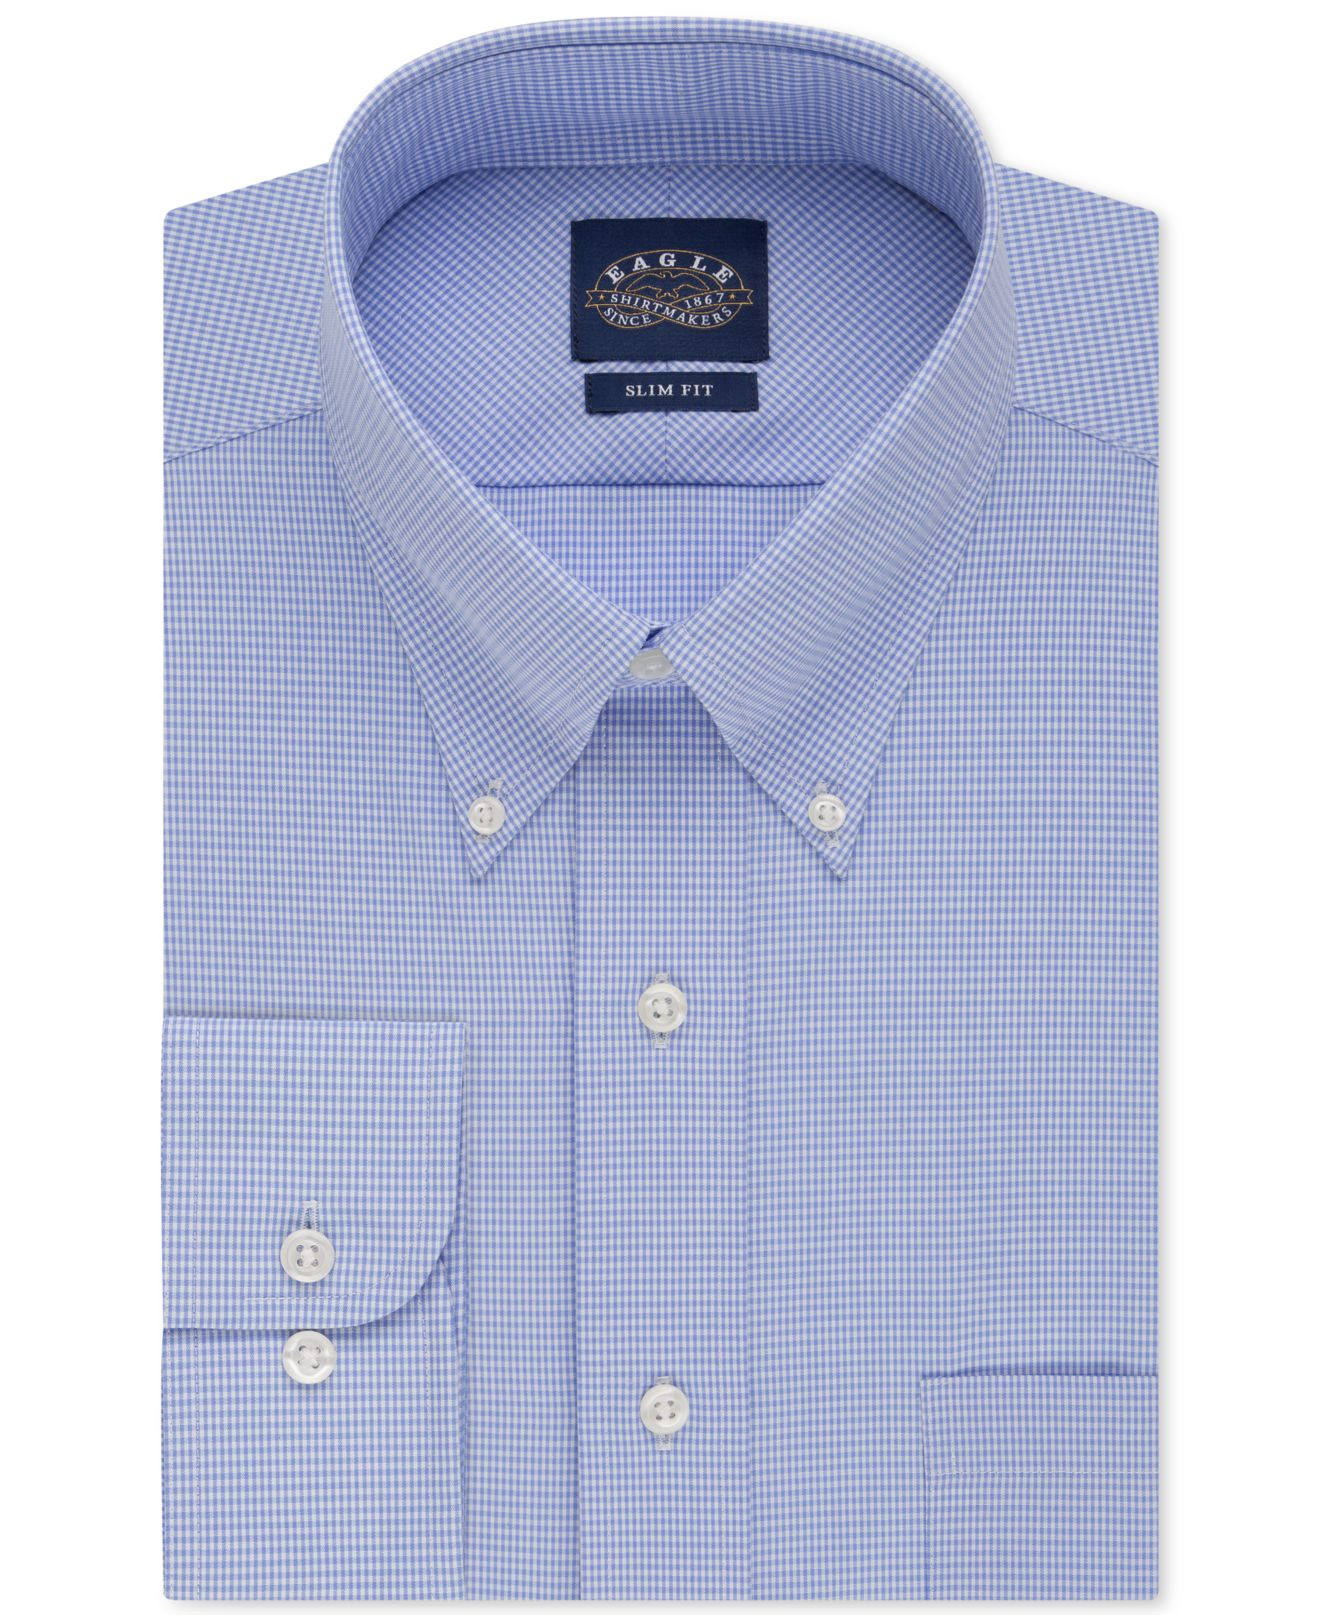 Eagle Slim Fit Non Iron Blue Gingham Dress Shirt In Blue